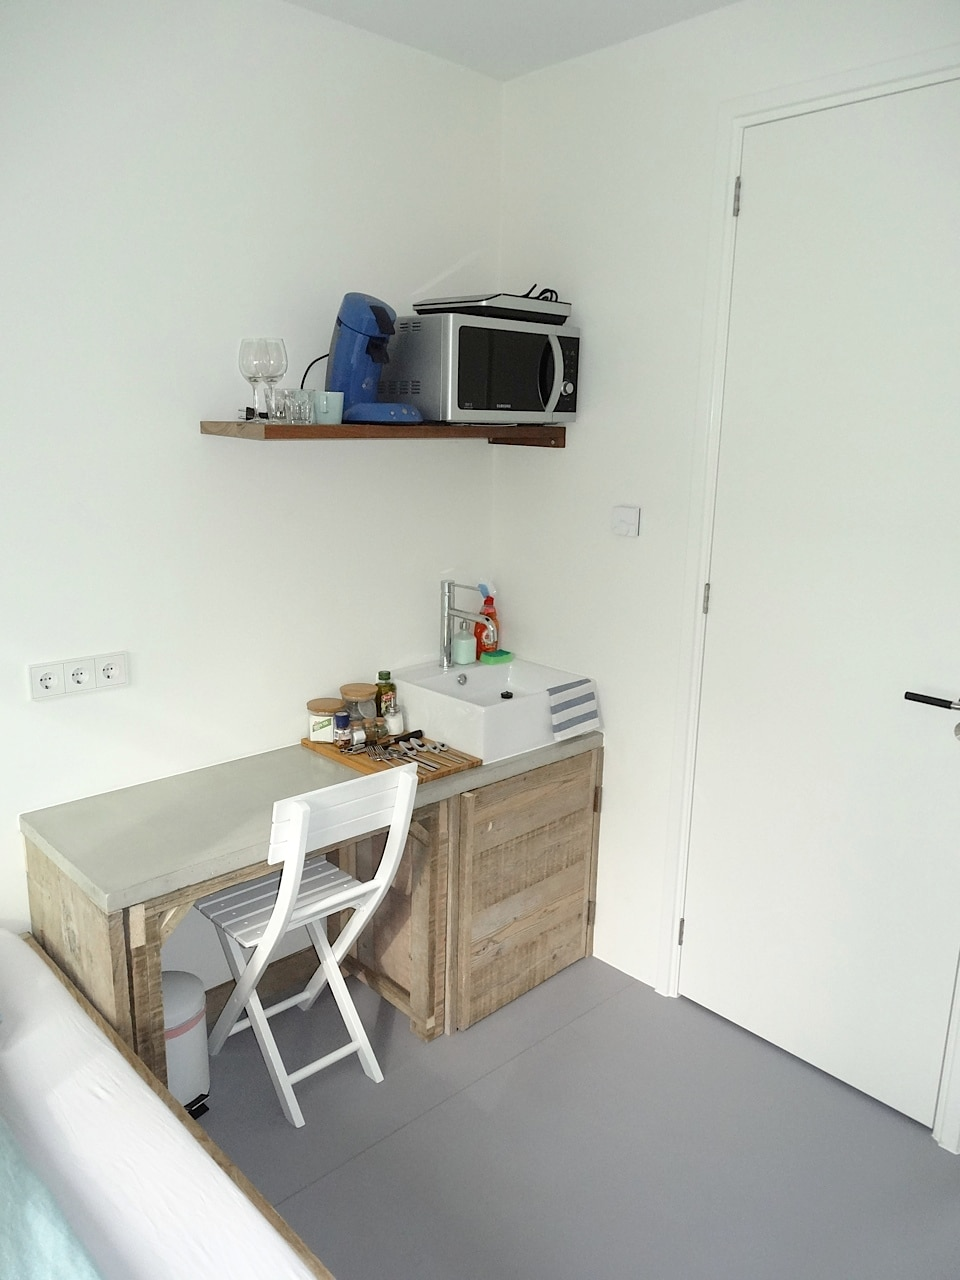 Simple desk and all necessary cooking equipment are present